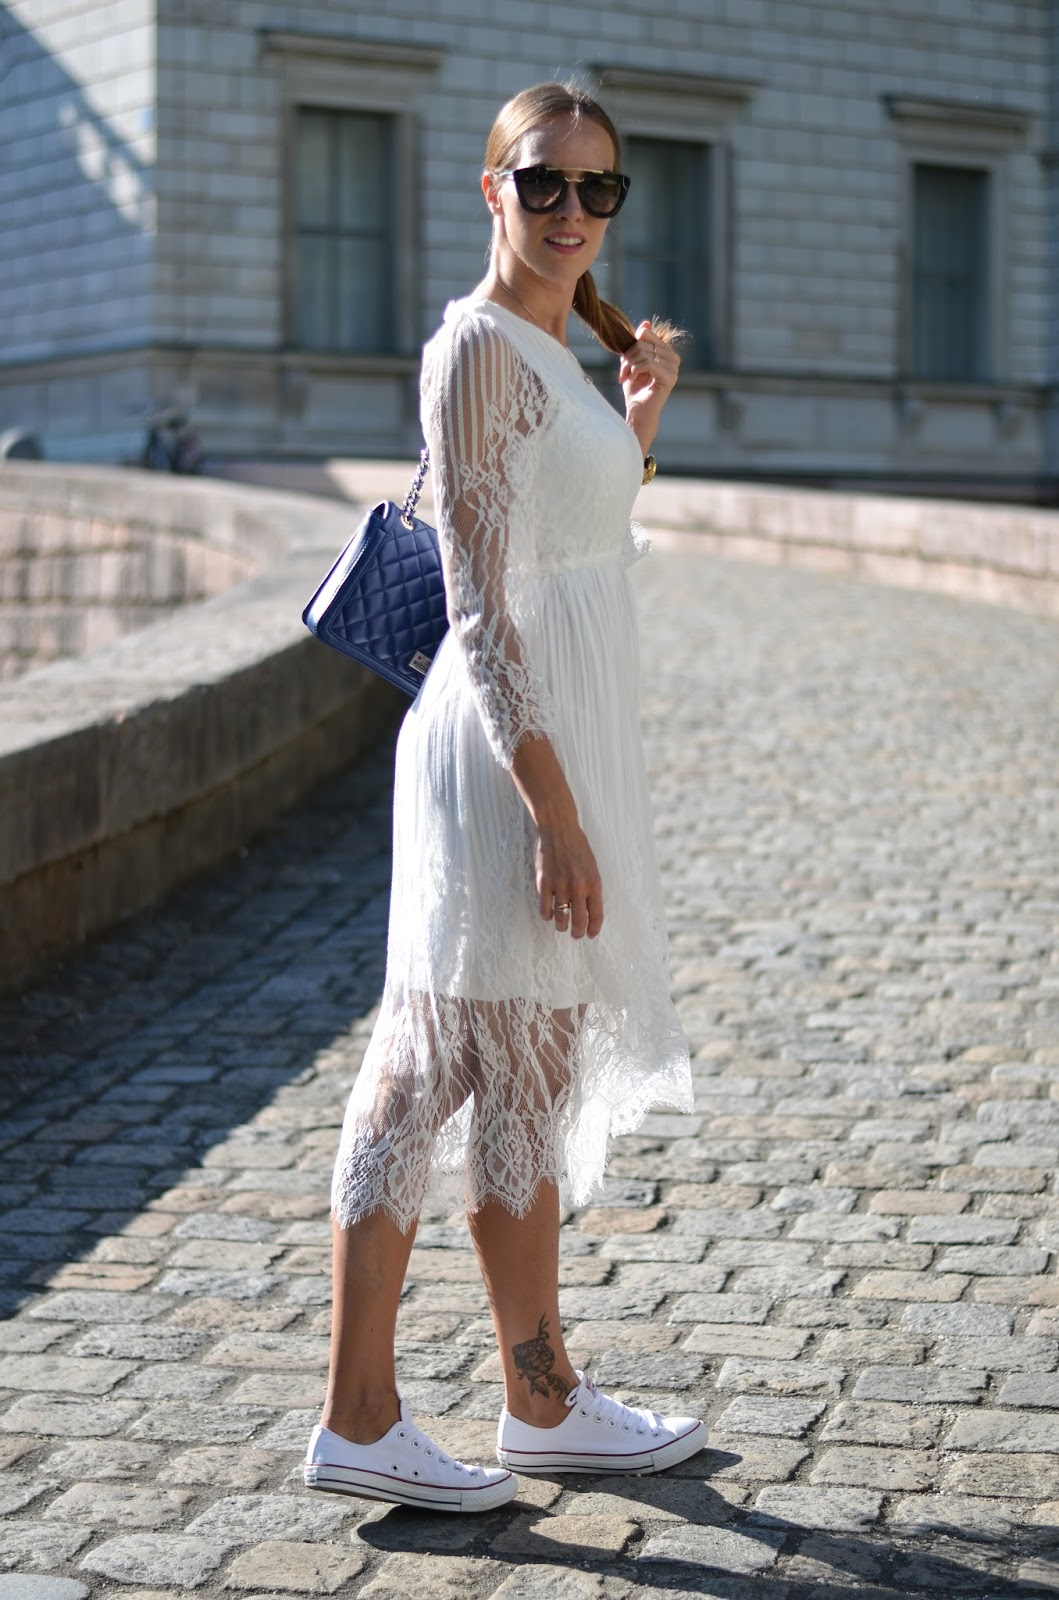 kristjaana mere white lace maxi dress summer outfit munich germany